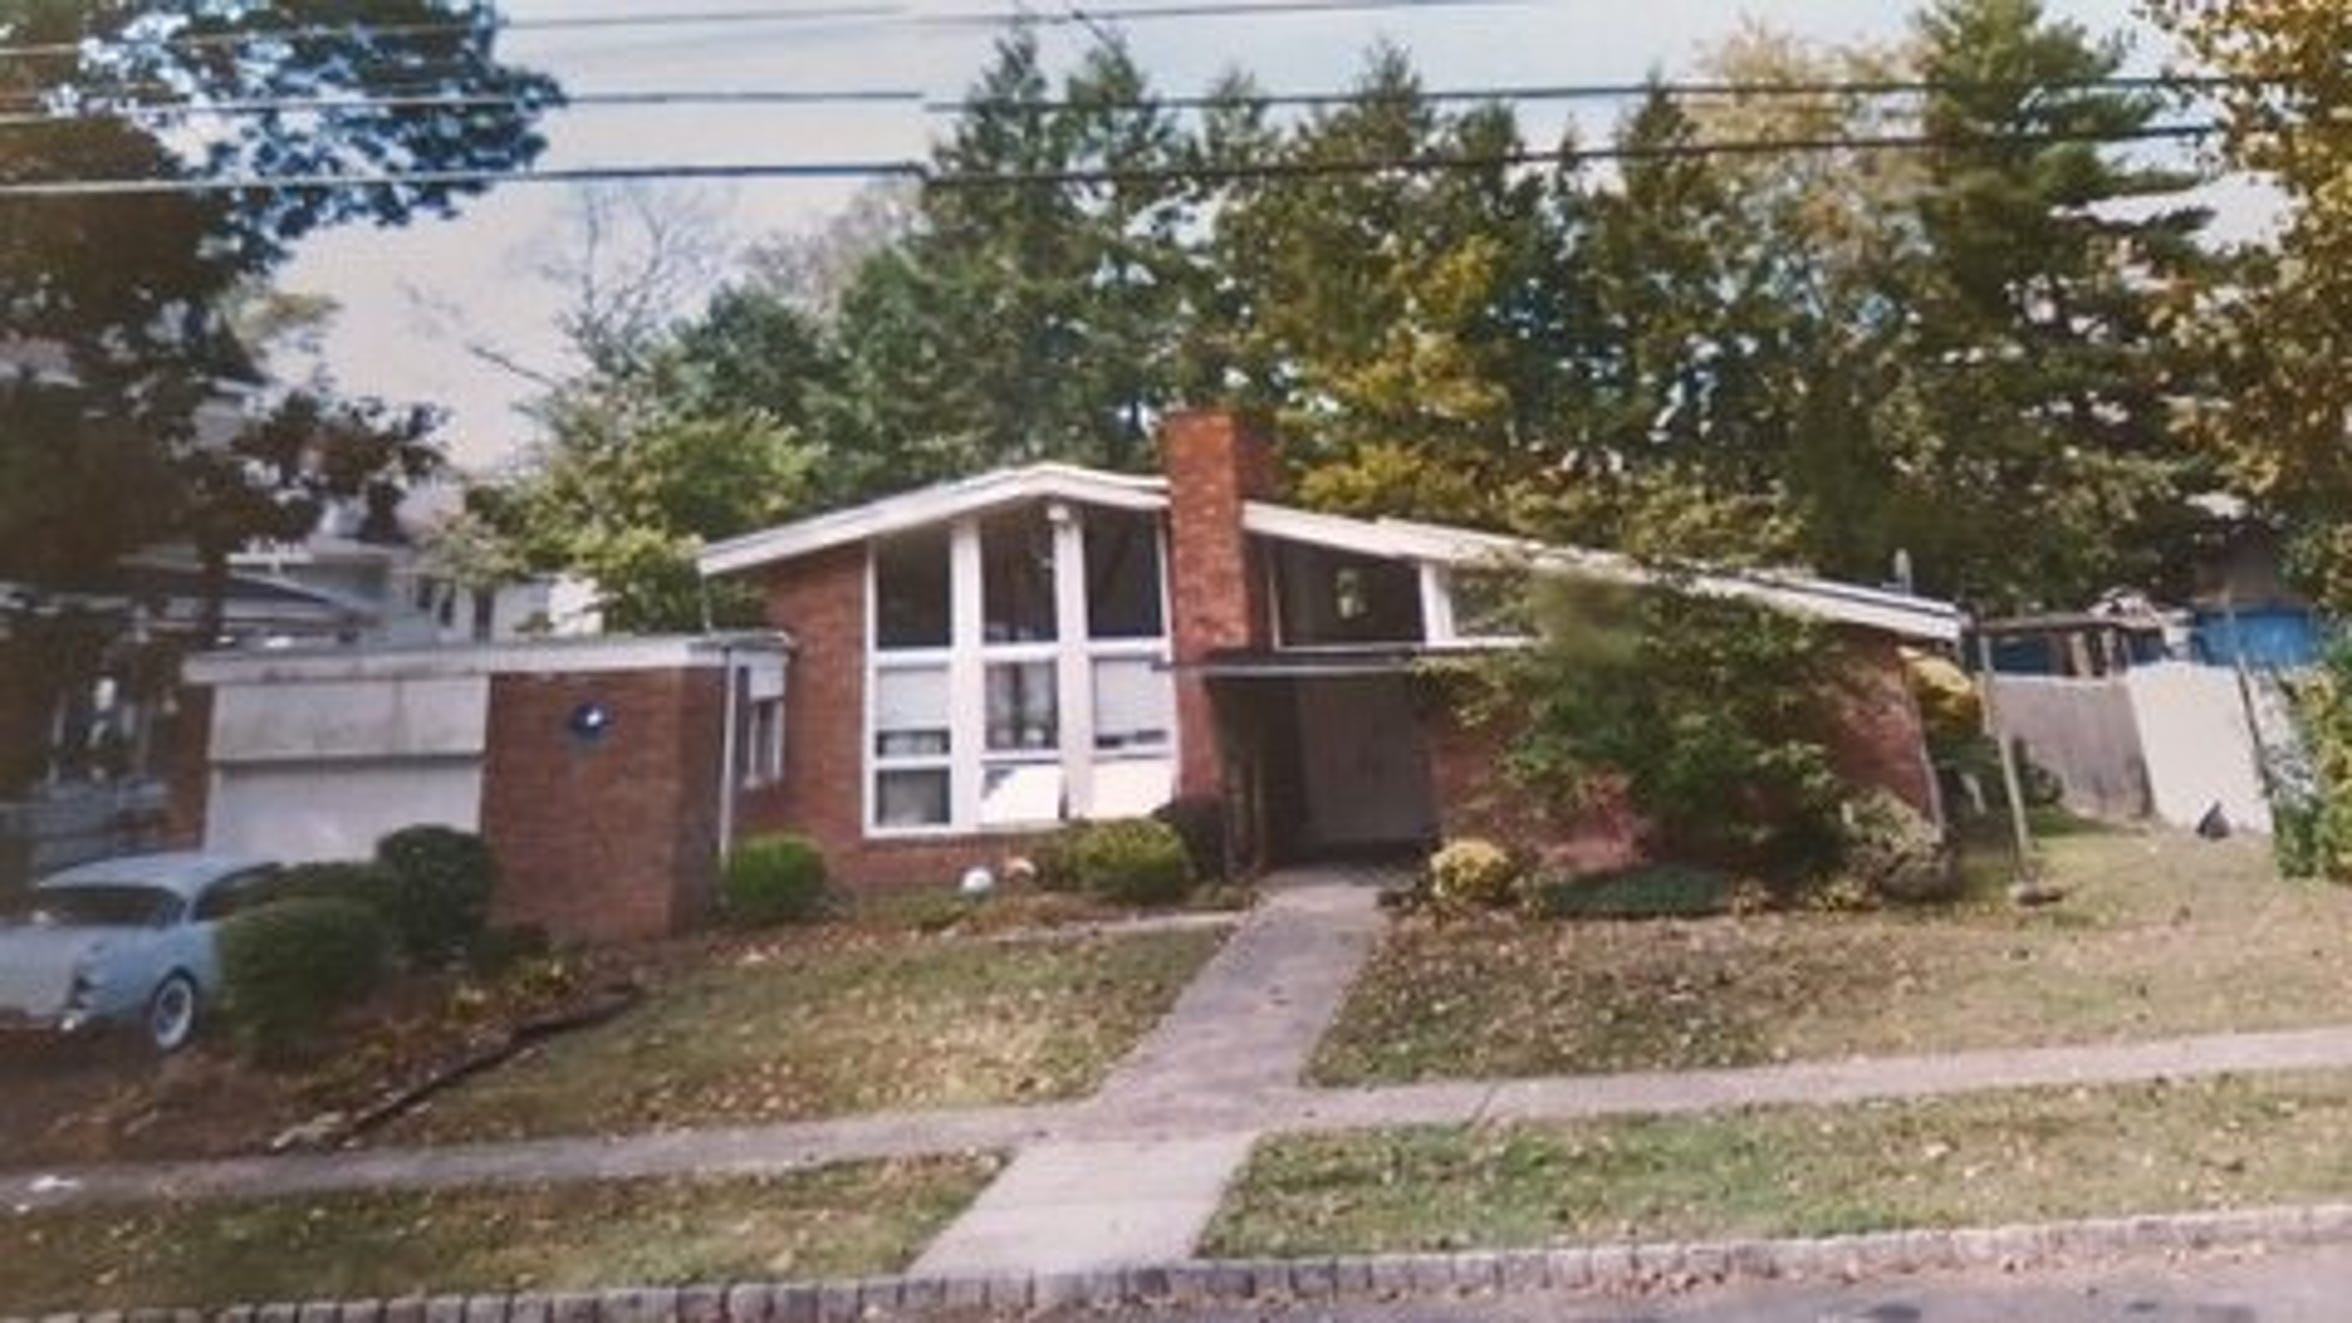 Ruth Jacobson's home in Perth Amboy